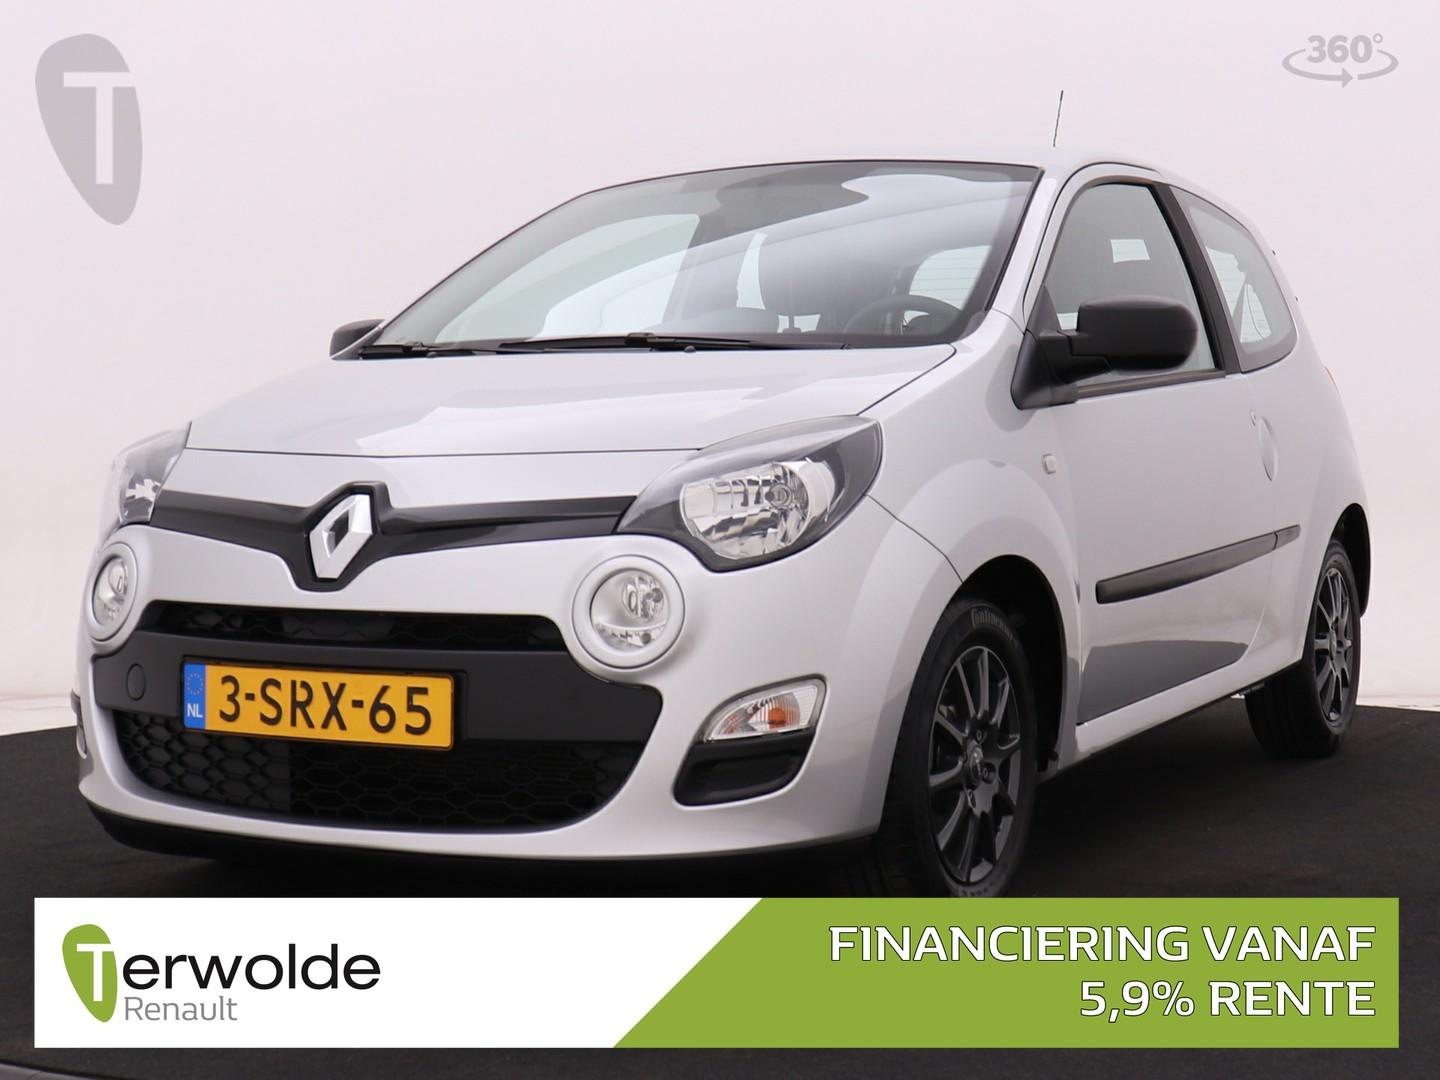 Renault Twingo 1.2 16v parisienne airco i bluetooth i centrale vergrendeling